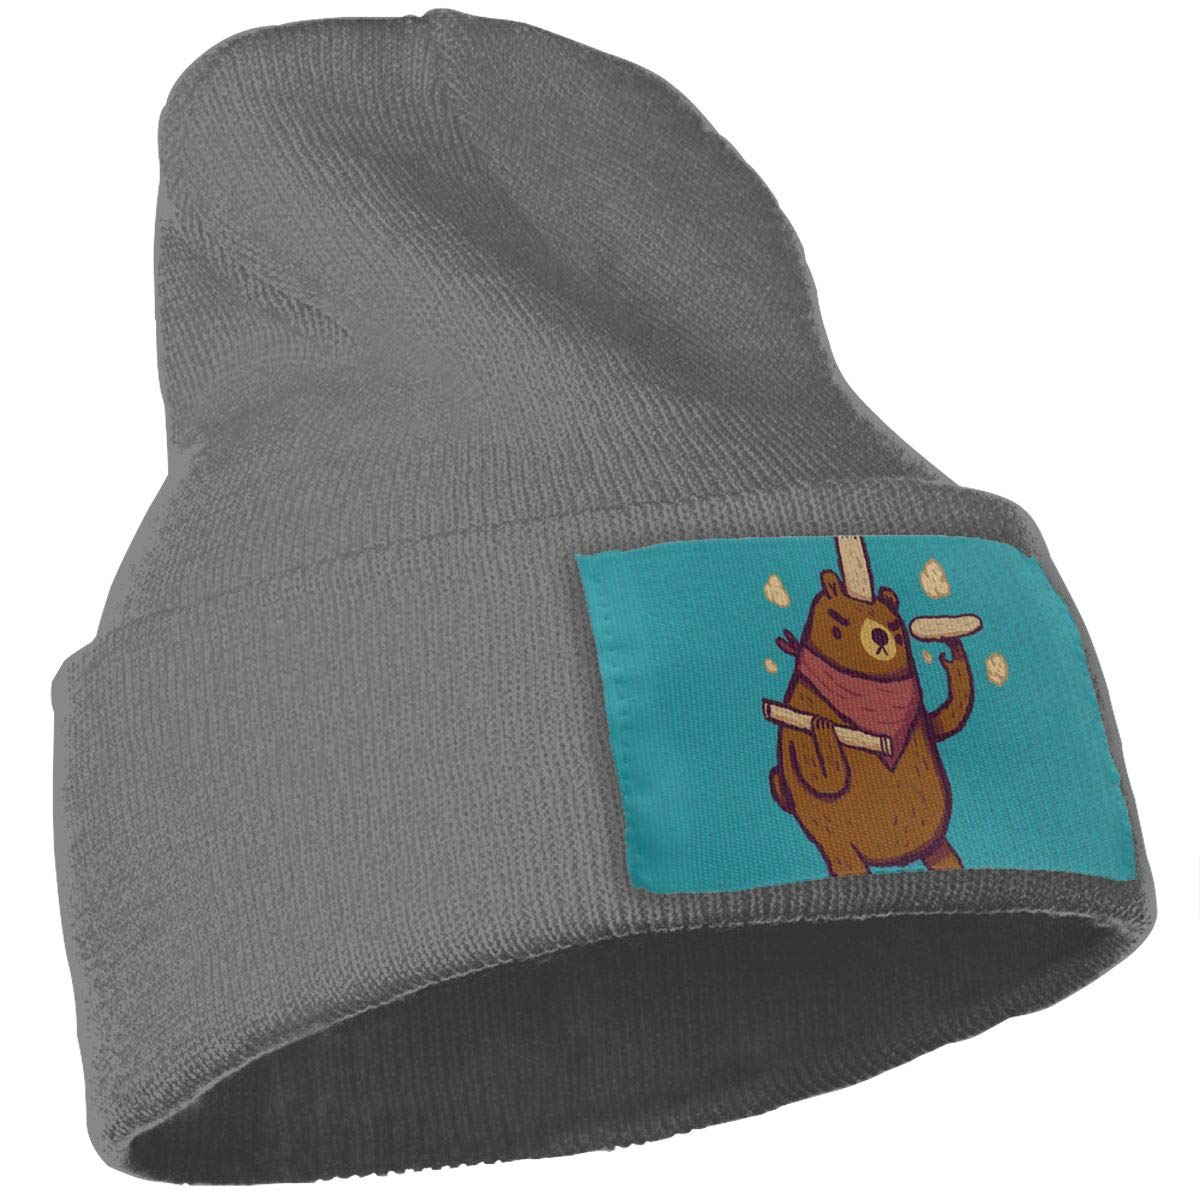 JimHappy Make Me Another Pizza Winter Warm Hats,Knit Slouchy Thick Skull Cap Black